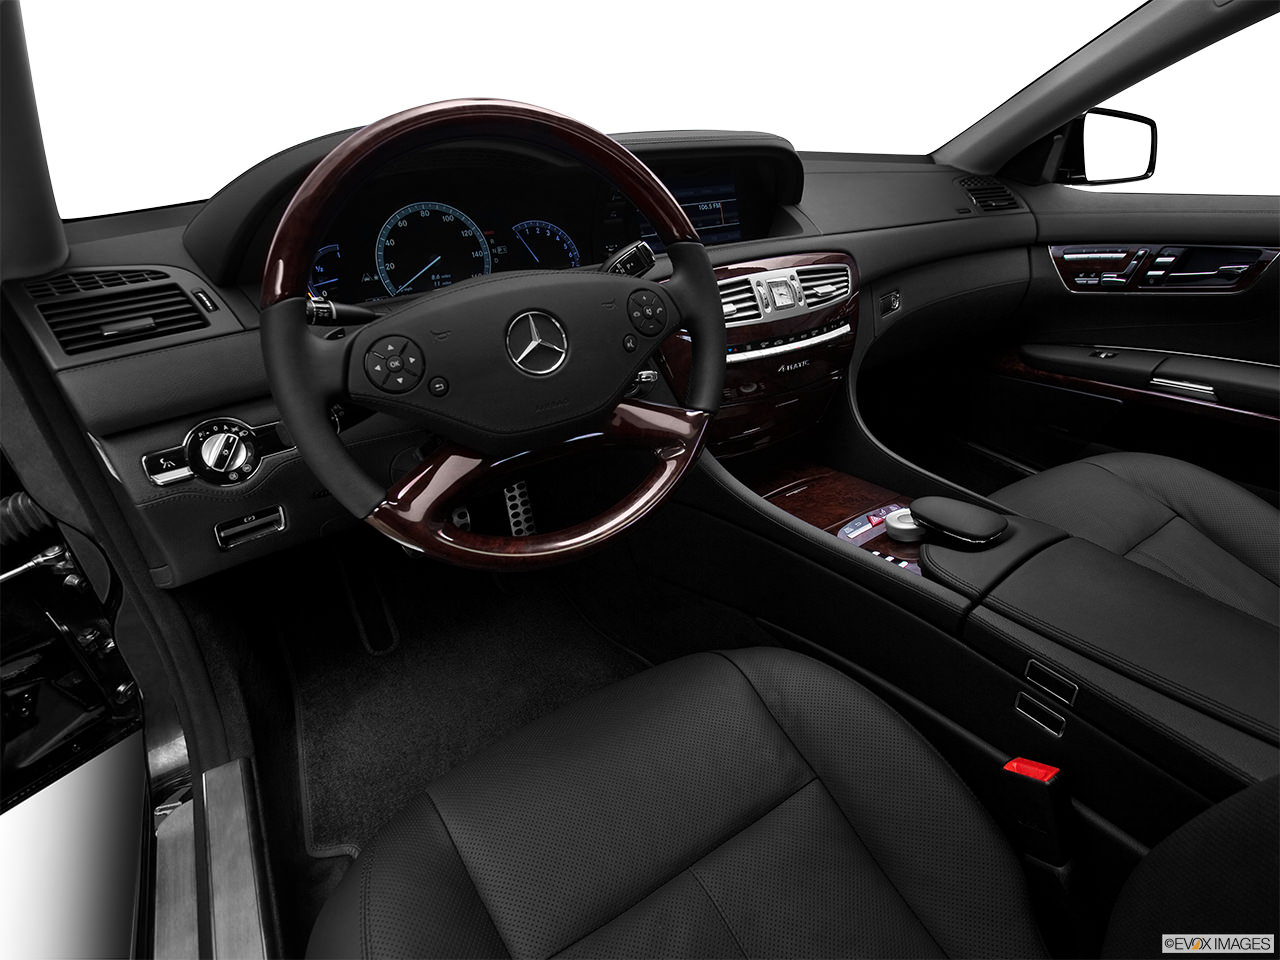 Mercedes benz CL 2012 interior